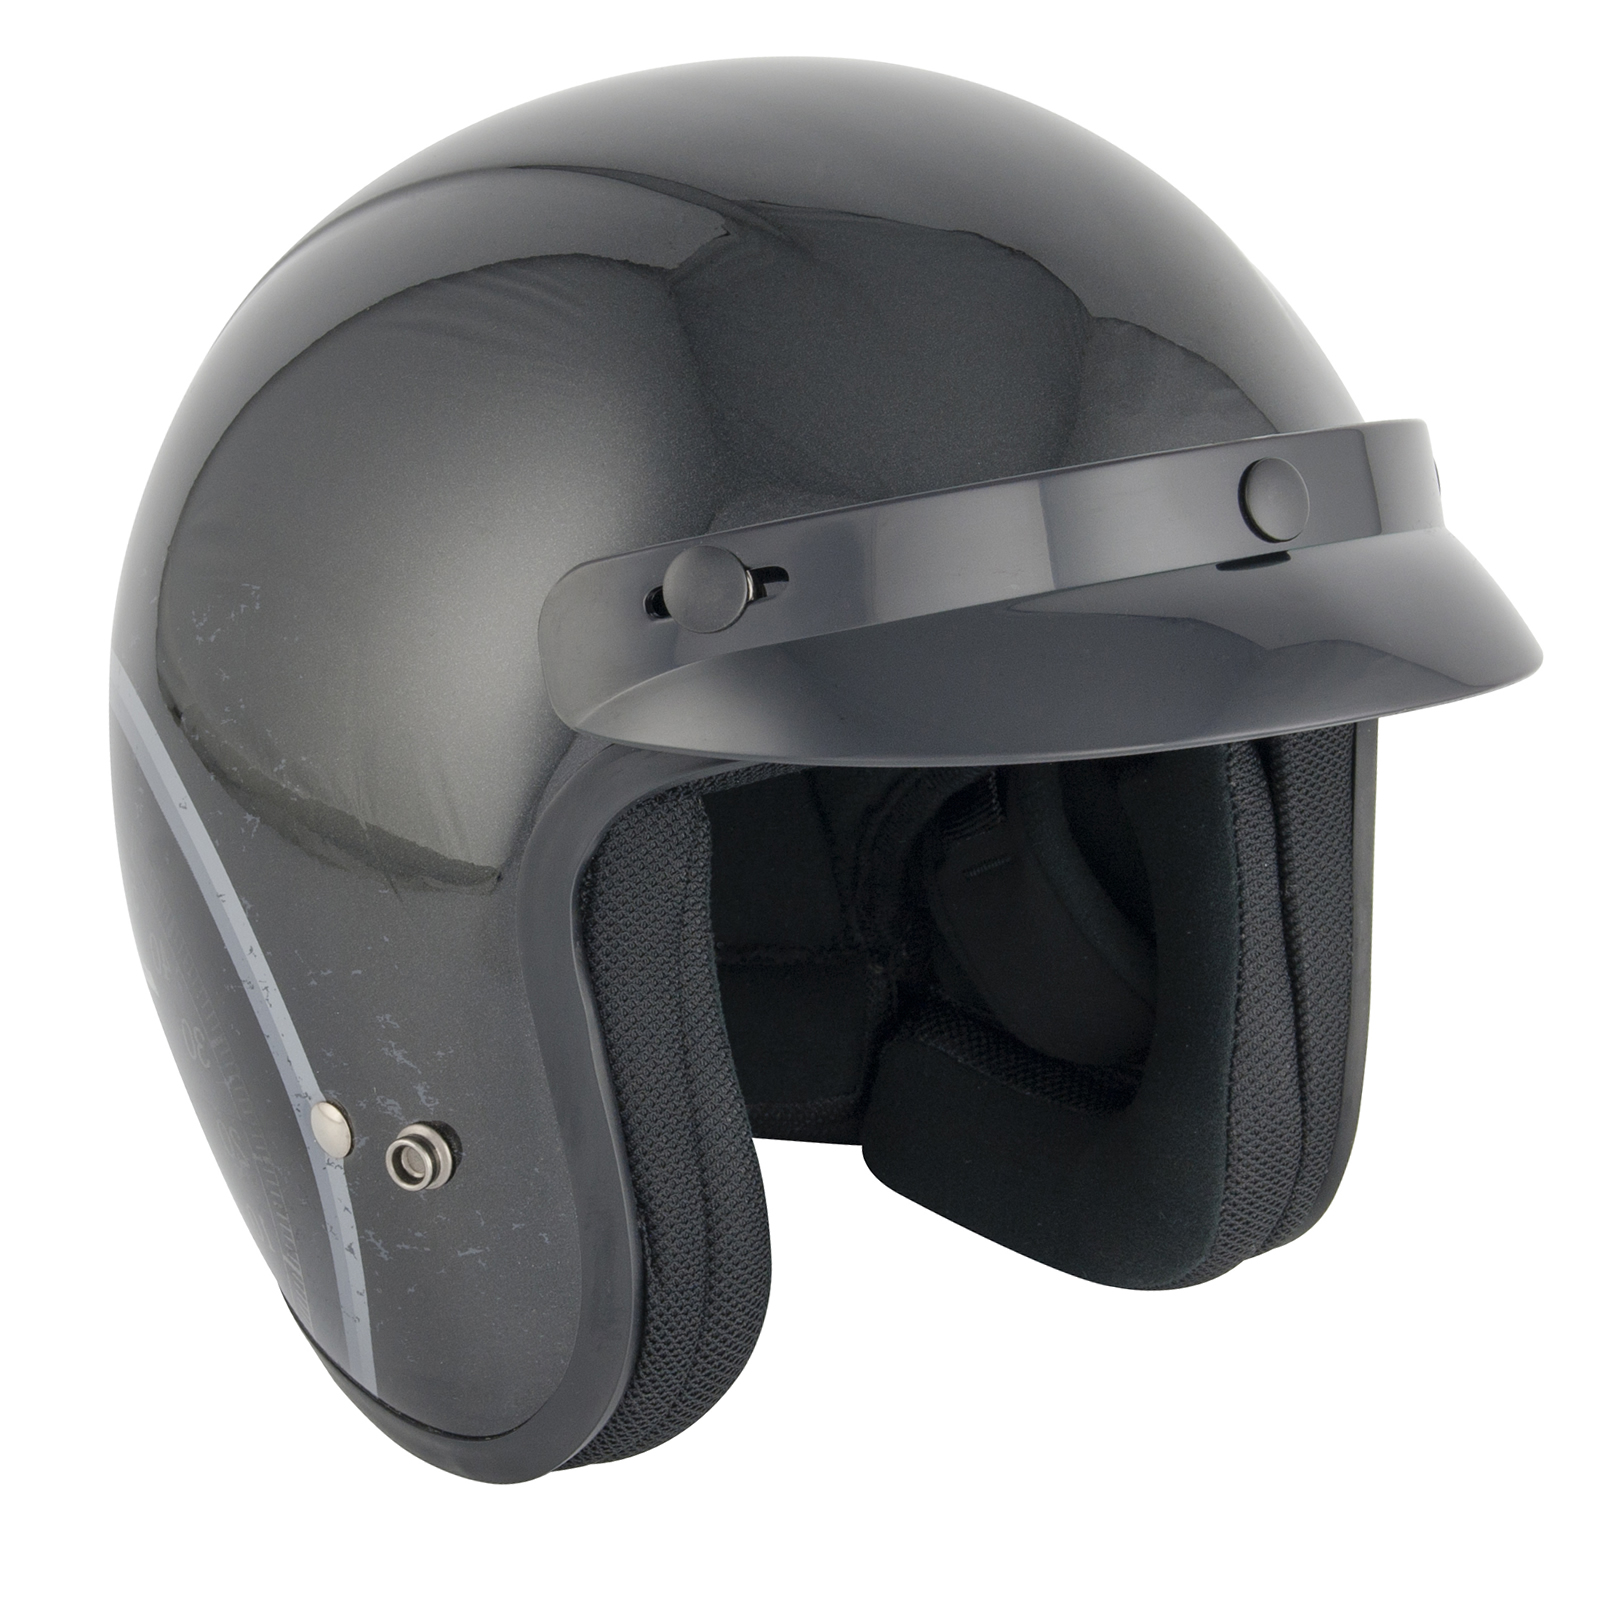 stealth hd320 glasfaser roller motorrad jet helm stadt. Black Bedroom Furniture Sets. Home Design Ideas